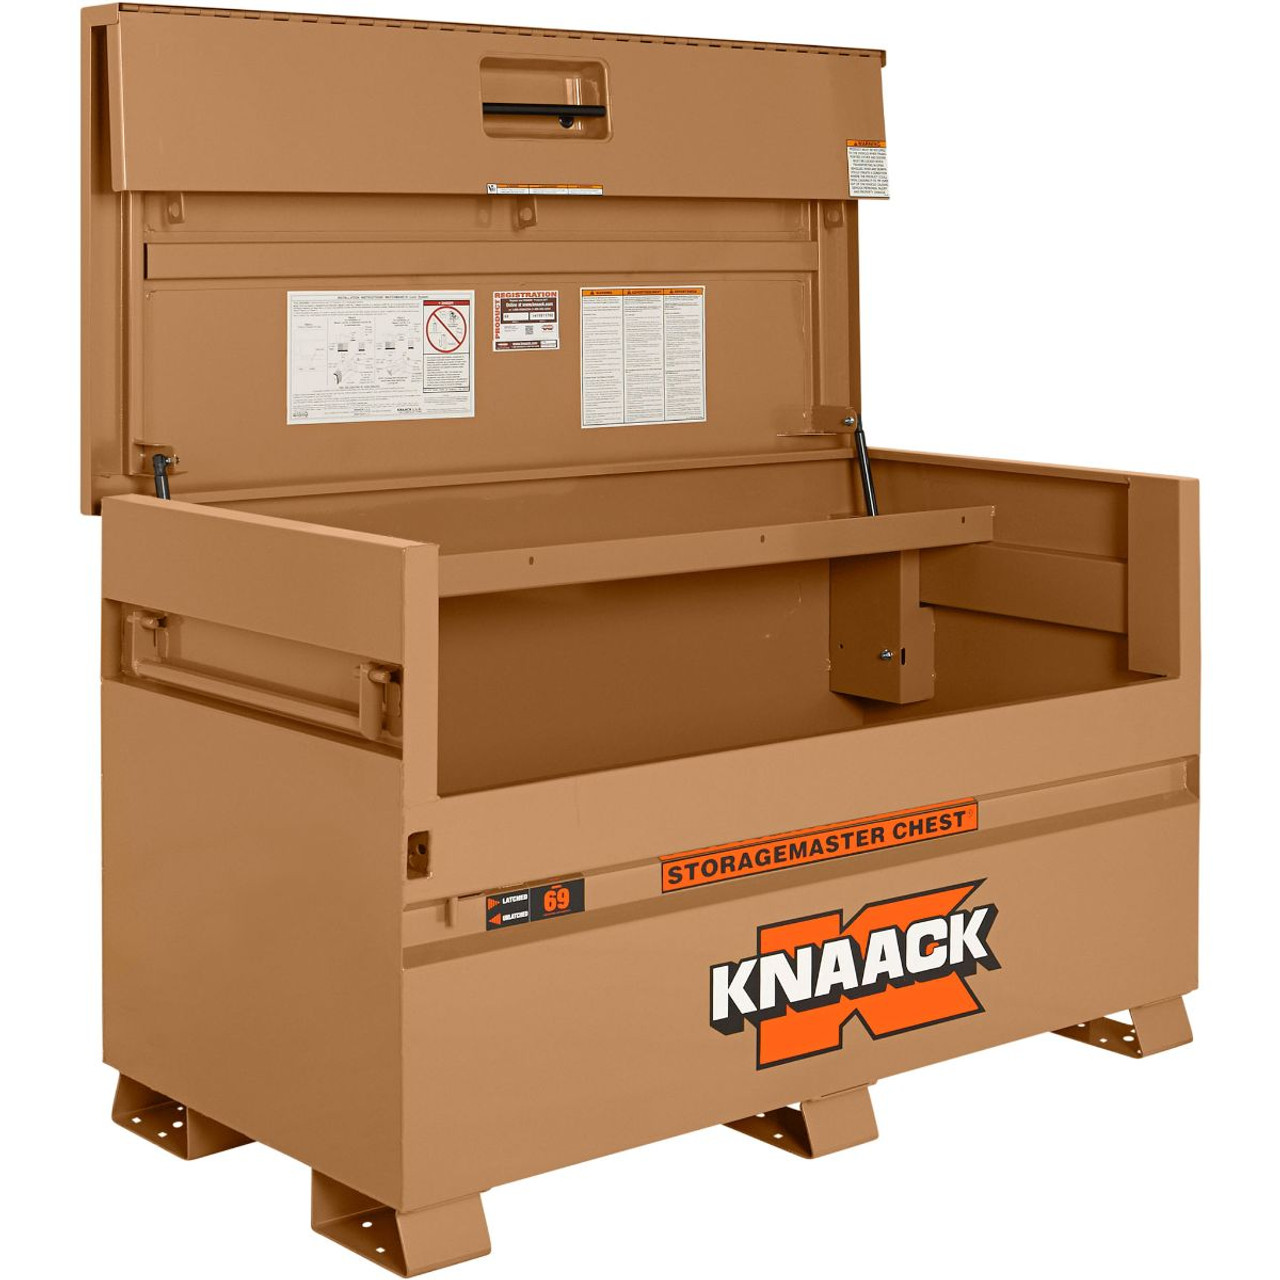 Knaack Model 69 Storagemaster Piano Box 35 3 Cu Ft